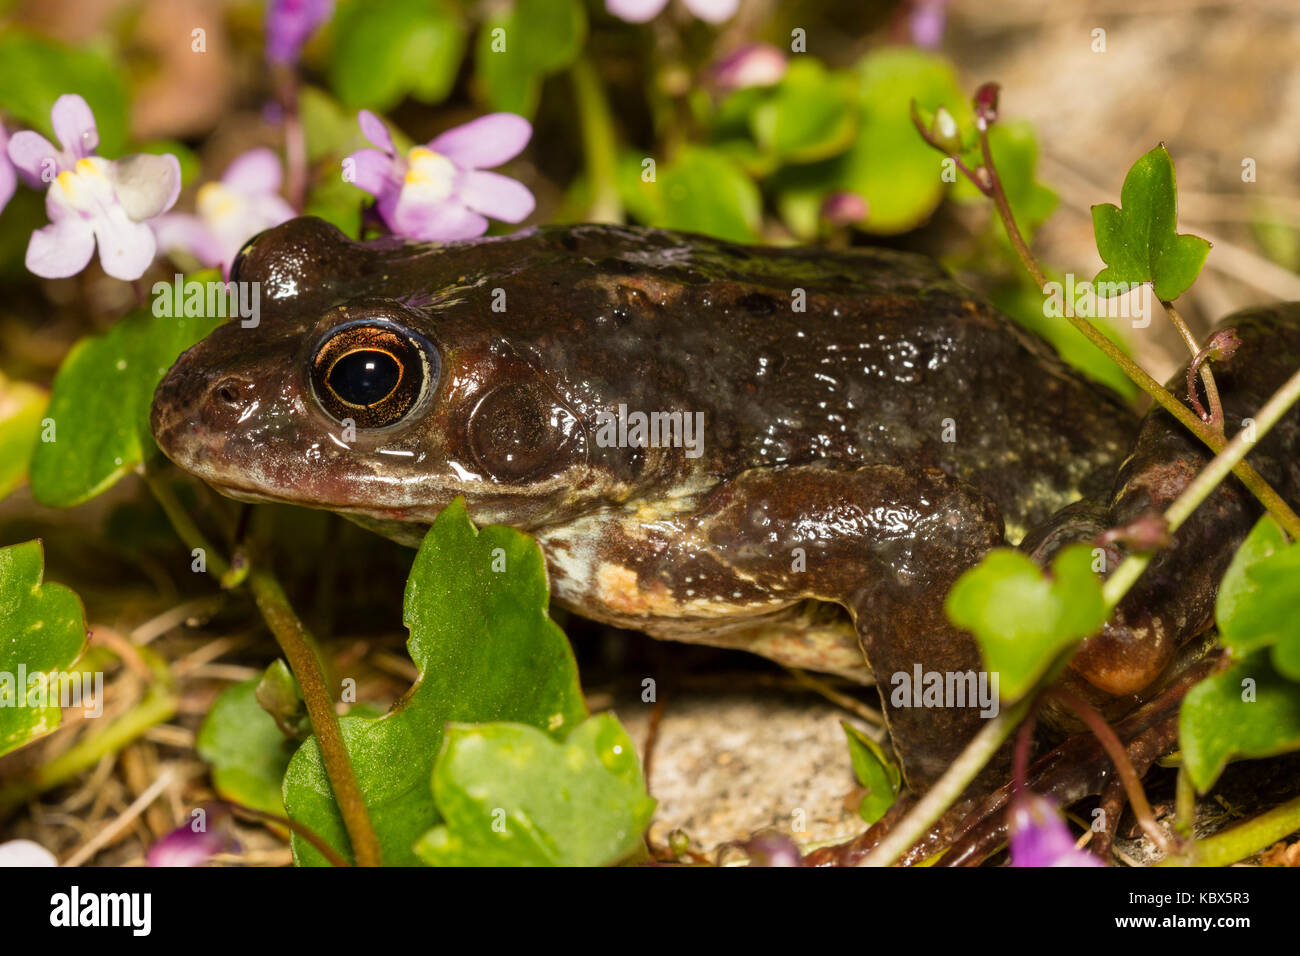 UK common frog, Rana temporaria, in vegetation by the side of a garden pond - Stock Image